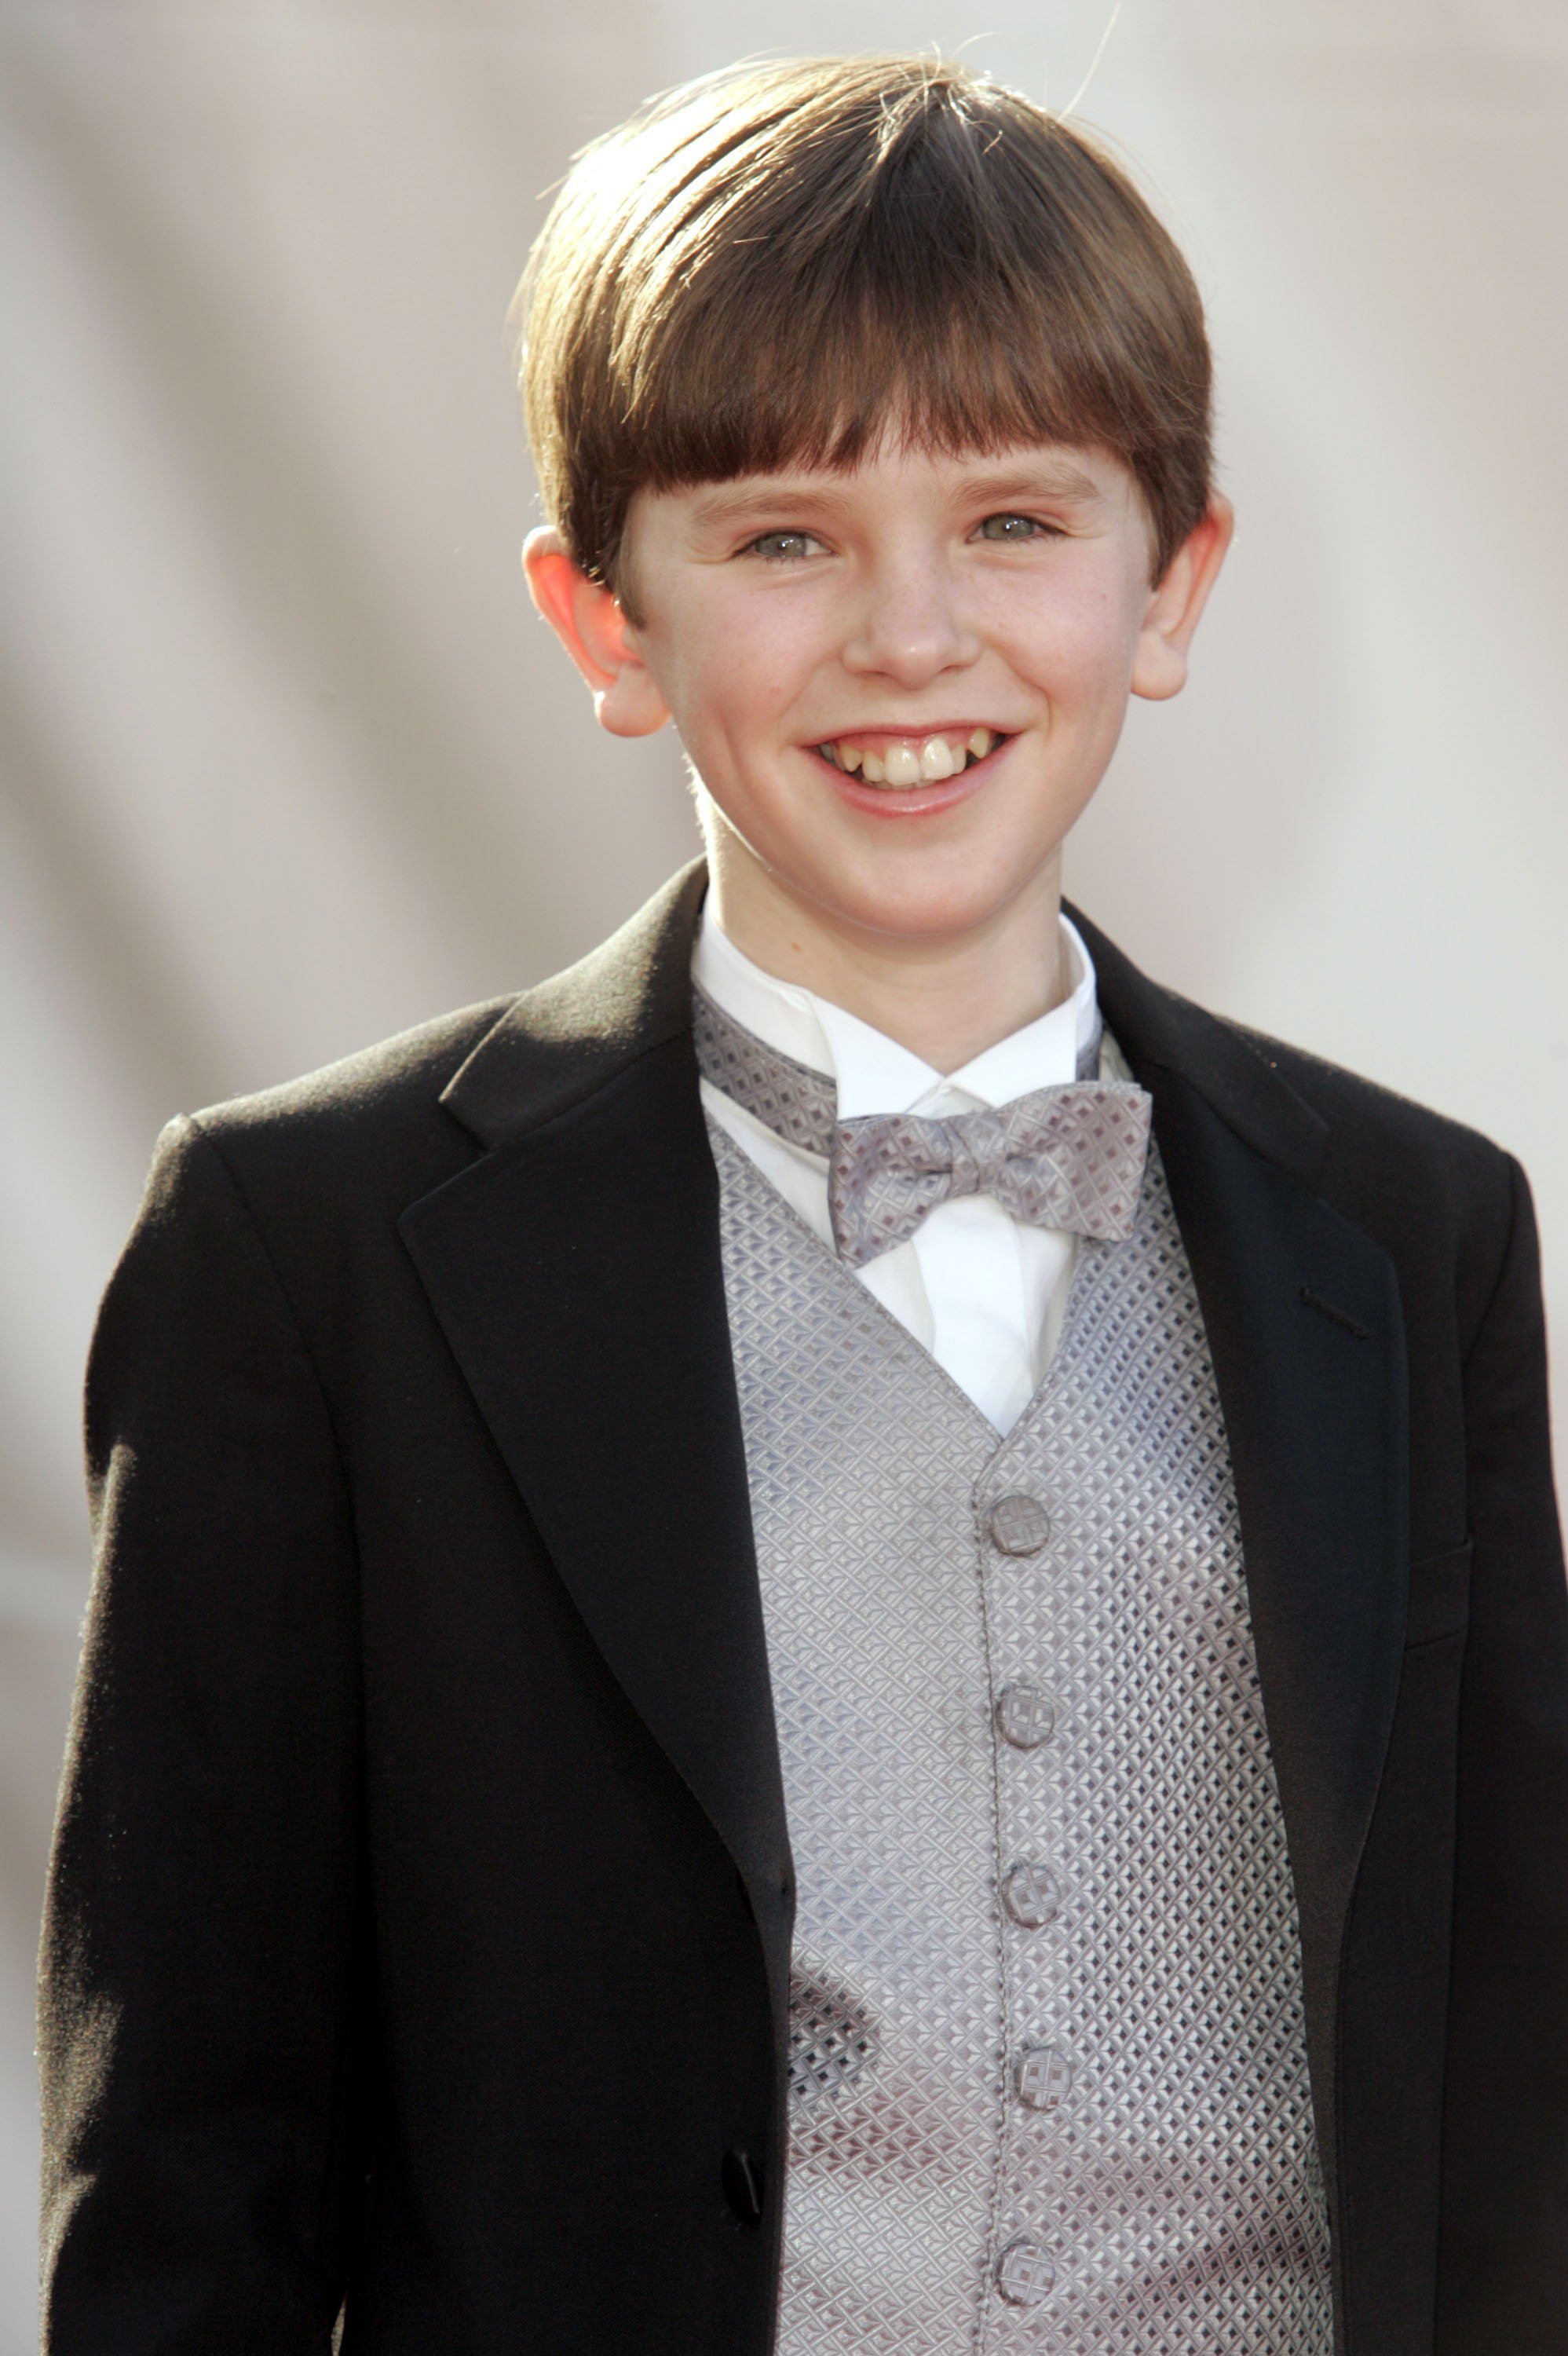 Freddie Highmore during the 11th Annual Screen Actors Guild Awards in 2005 / Photo:Getty Images